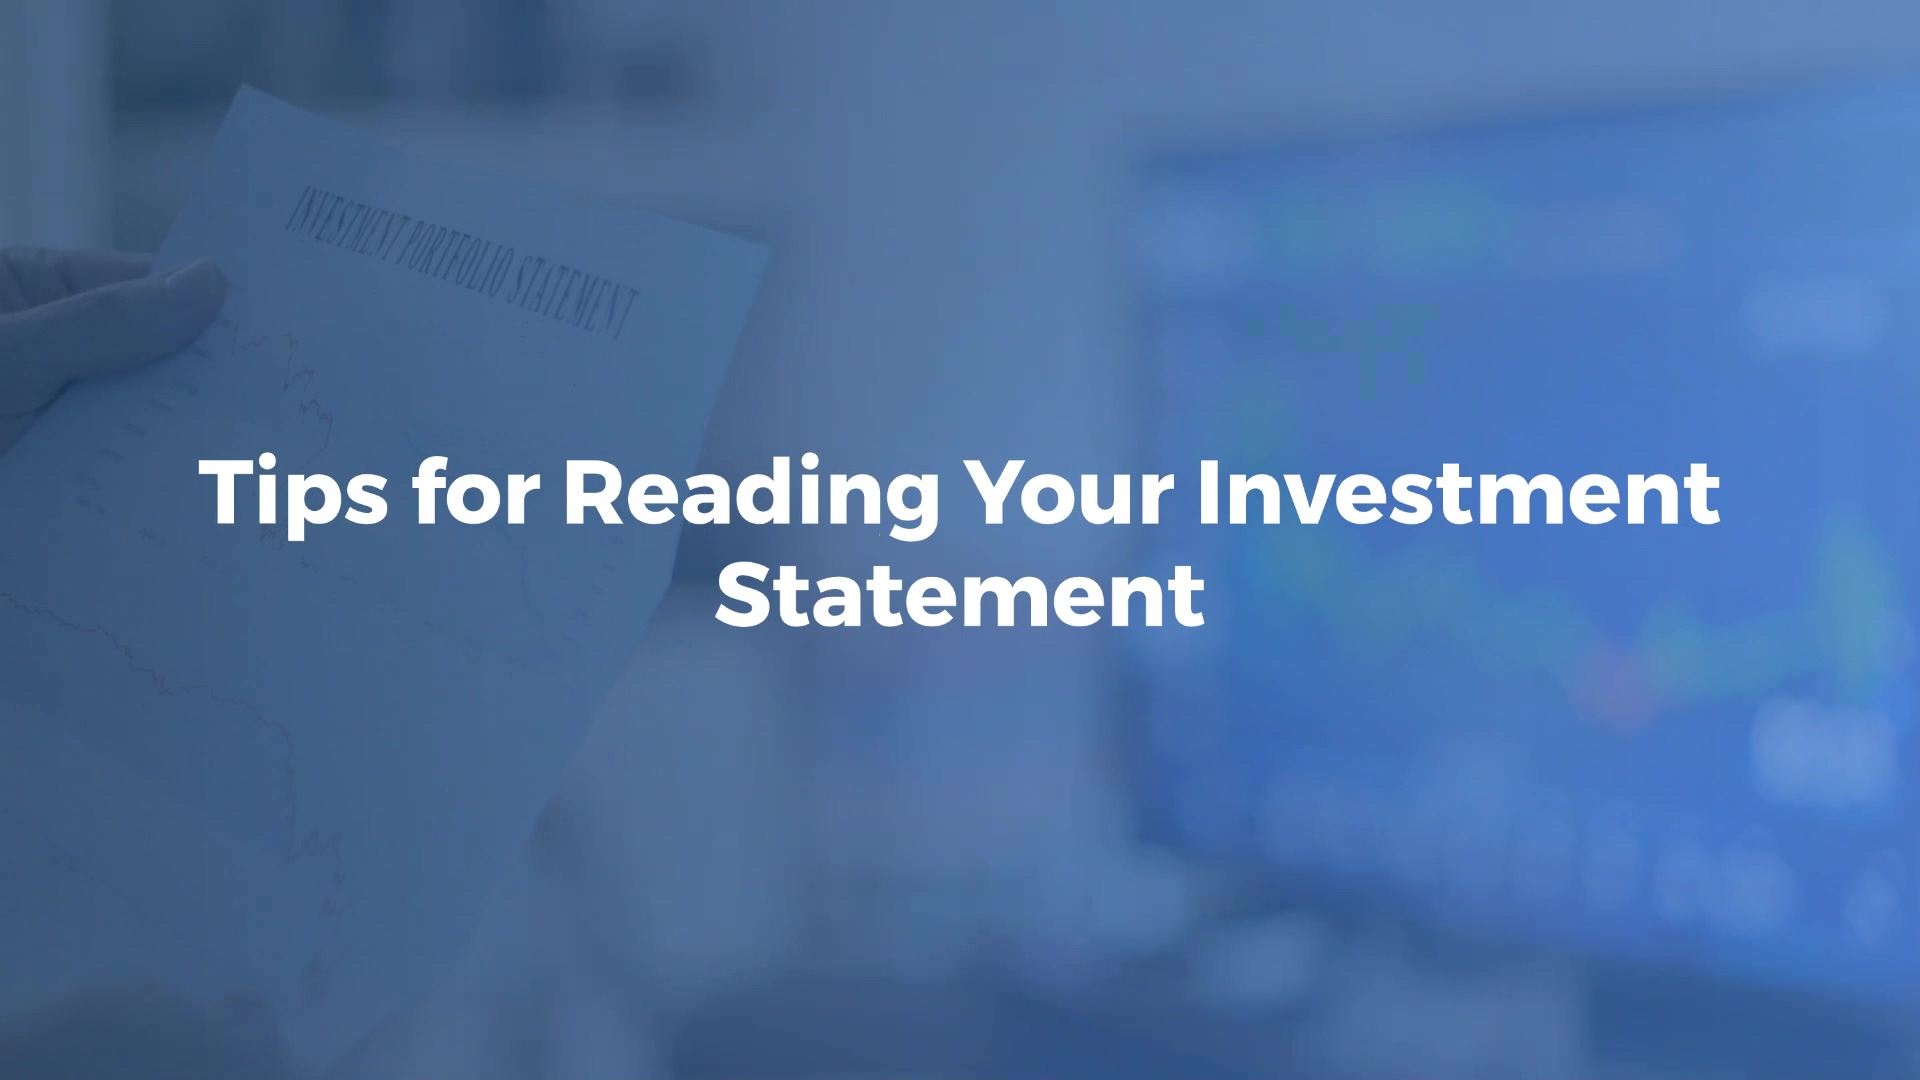 Tips_for_Reading_Your_Investment_Statement